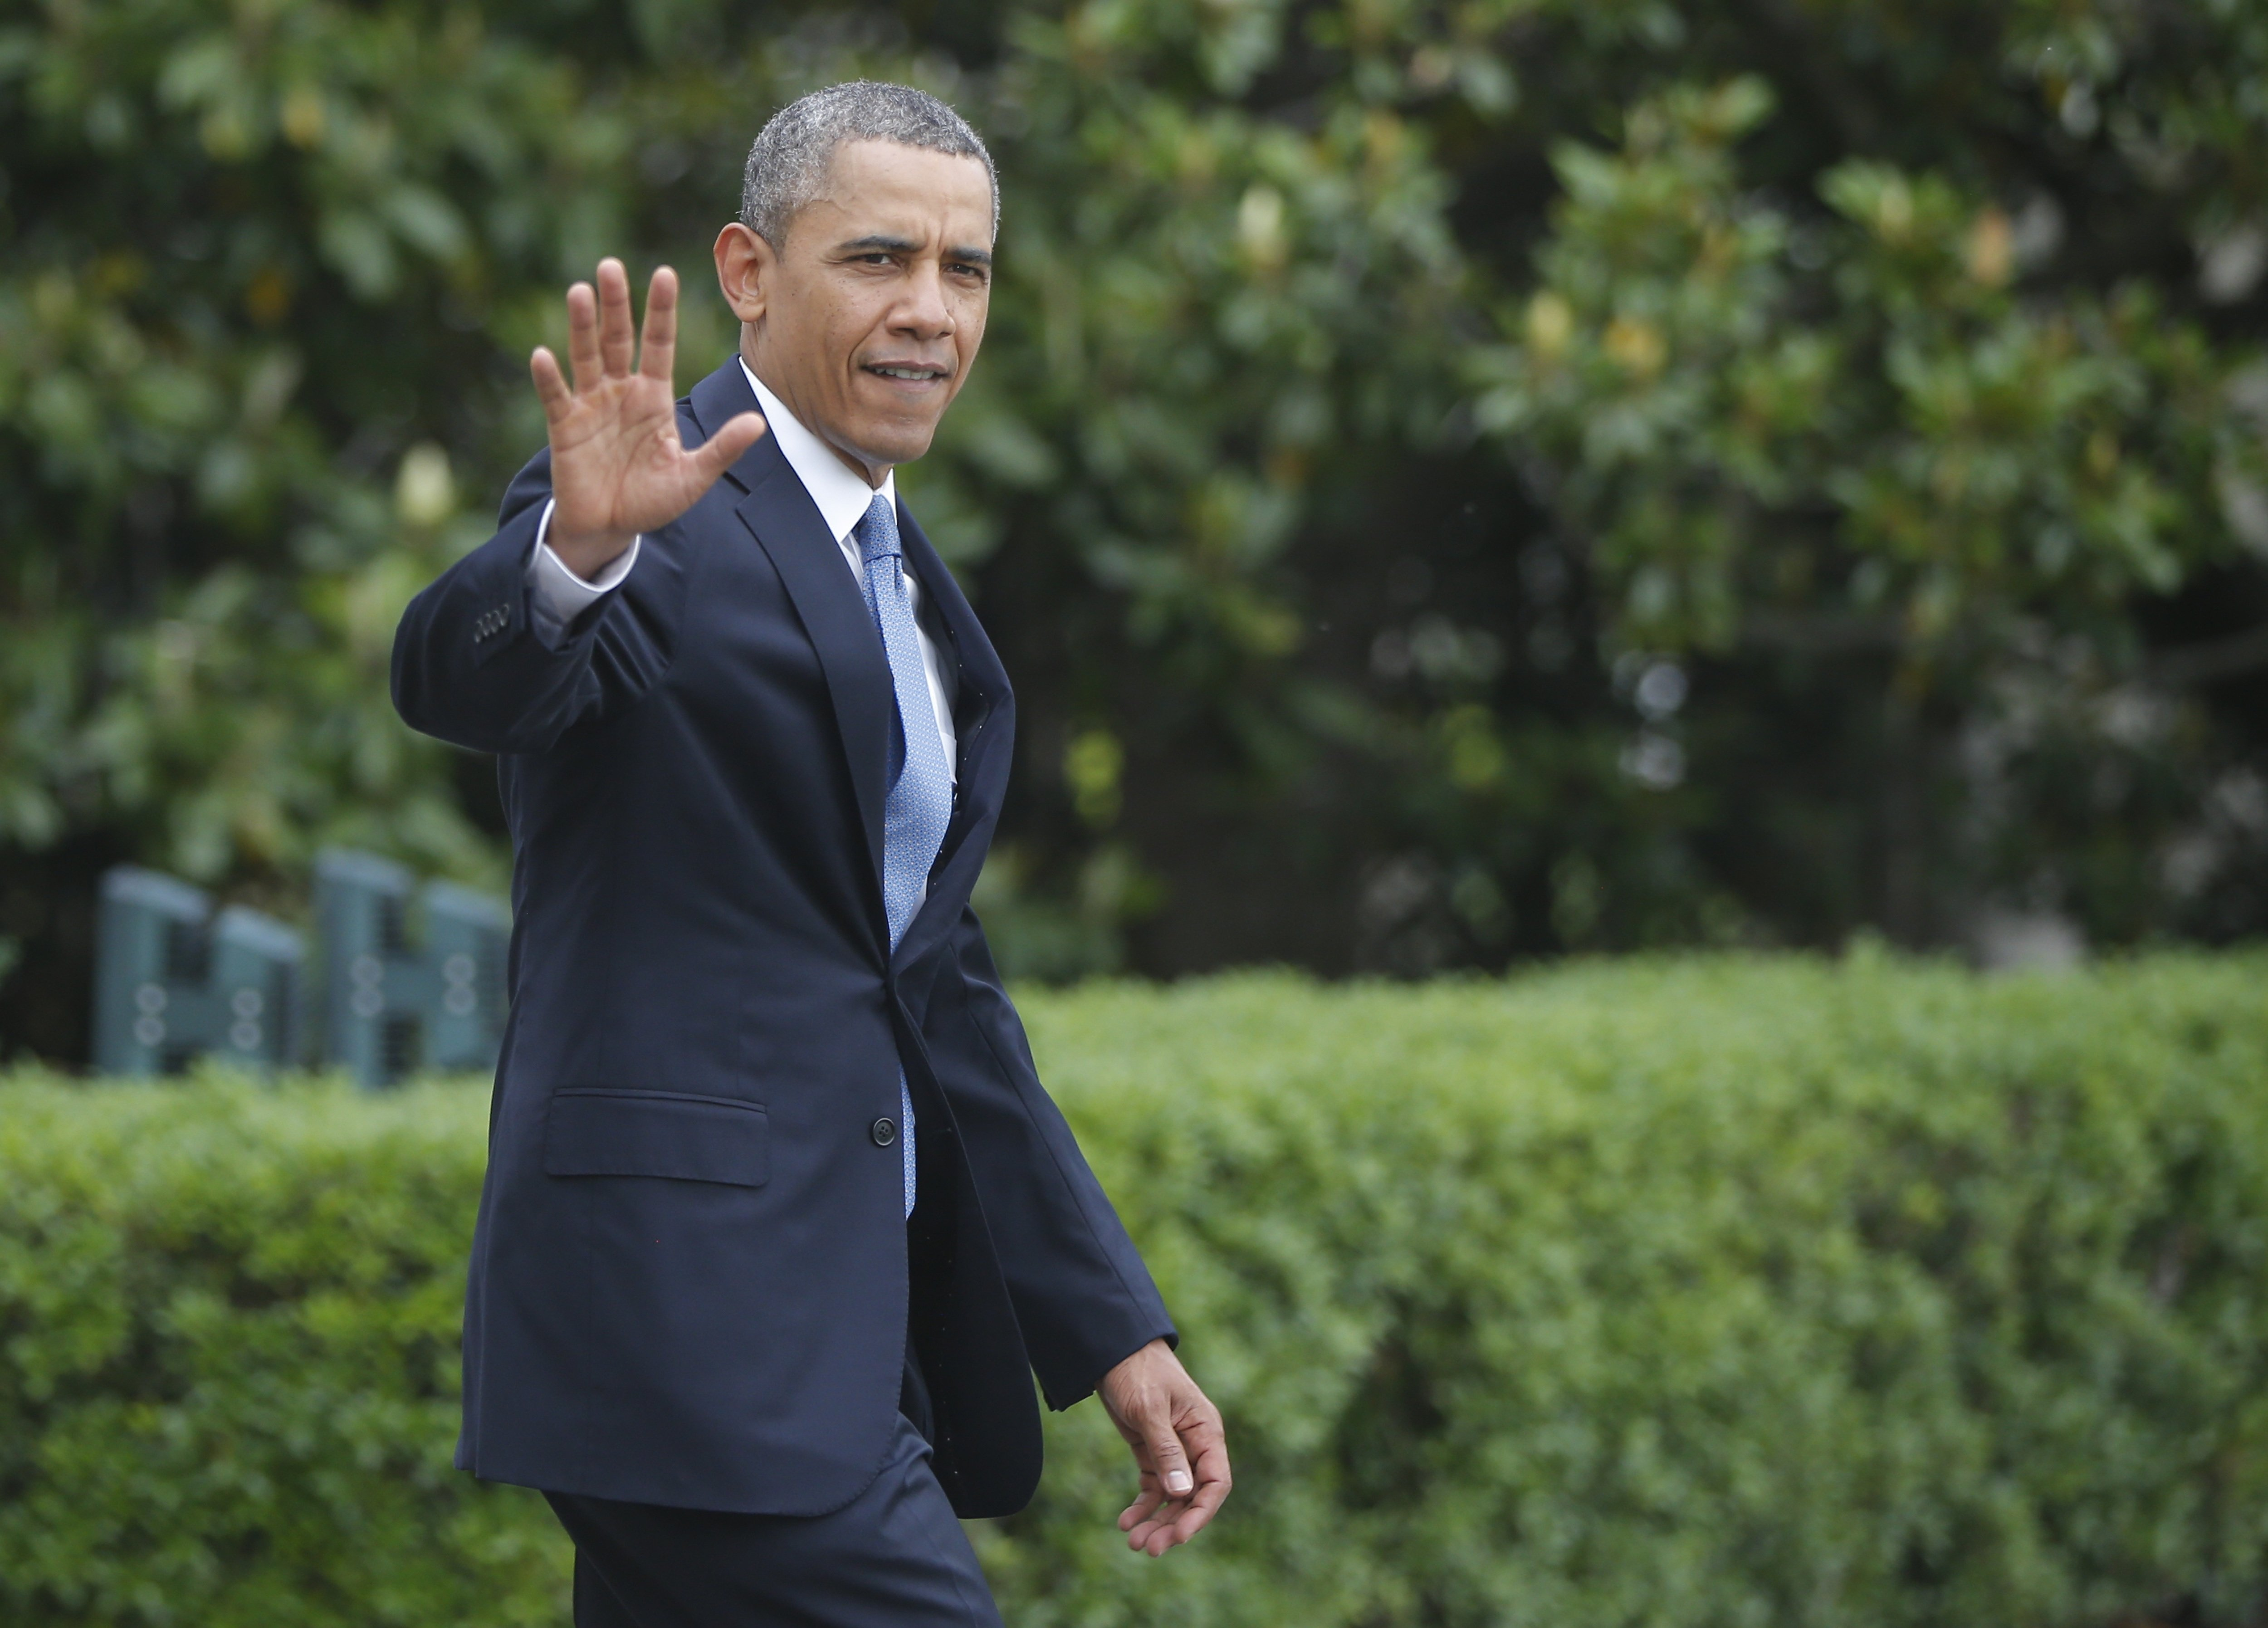 President Barack Obama walks on the South Lawn of the White House in Washington to board Marine One helicopter, Wednesday, May 28, 2014, as he travels to deliver the commencement address at the United States Military Academy at West Point.